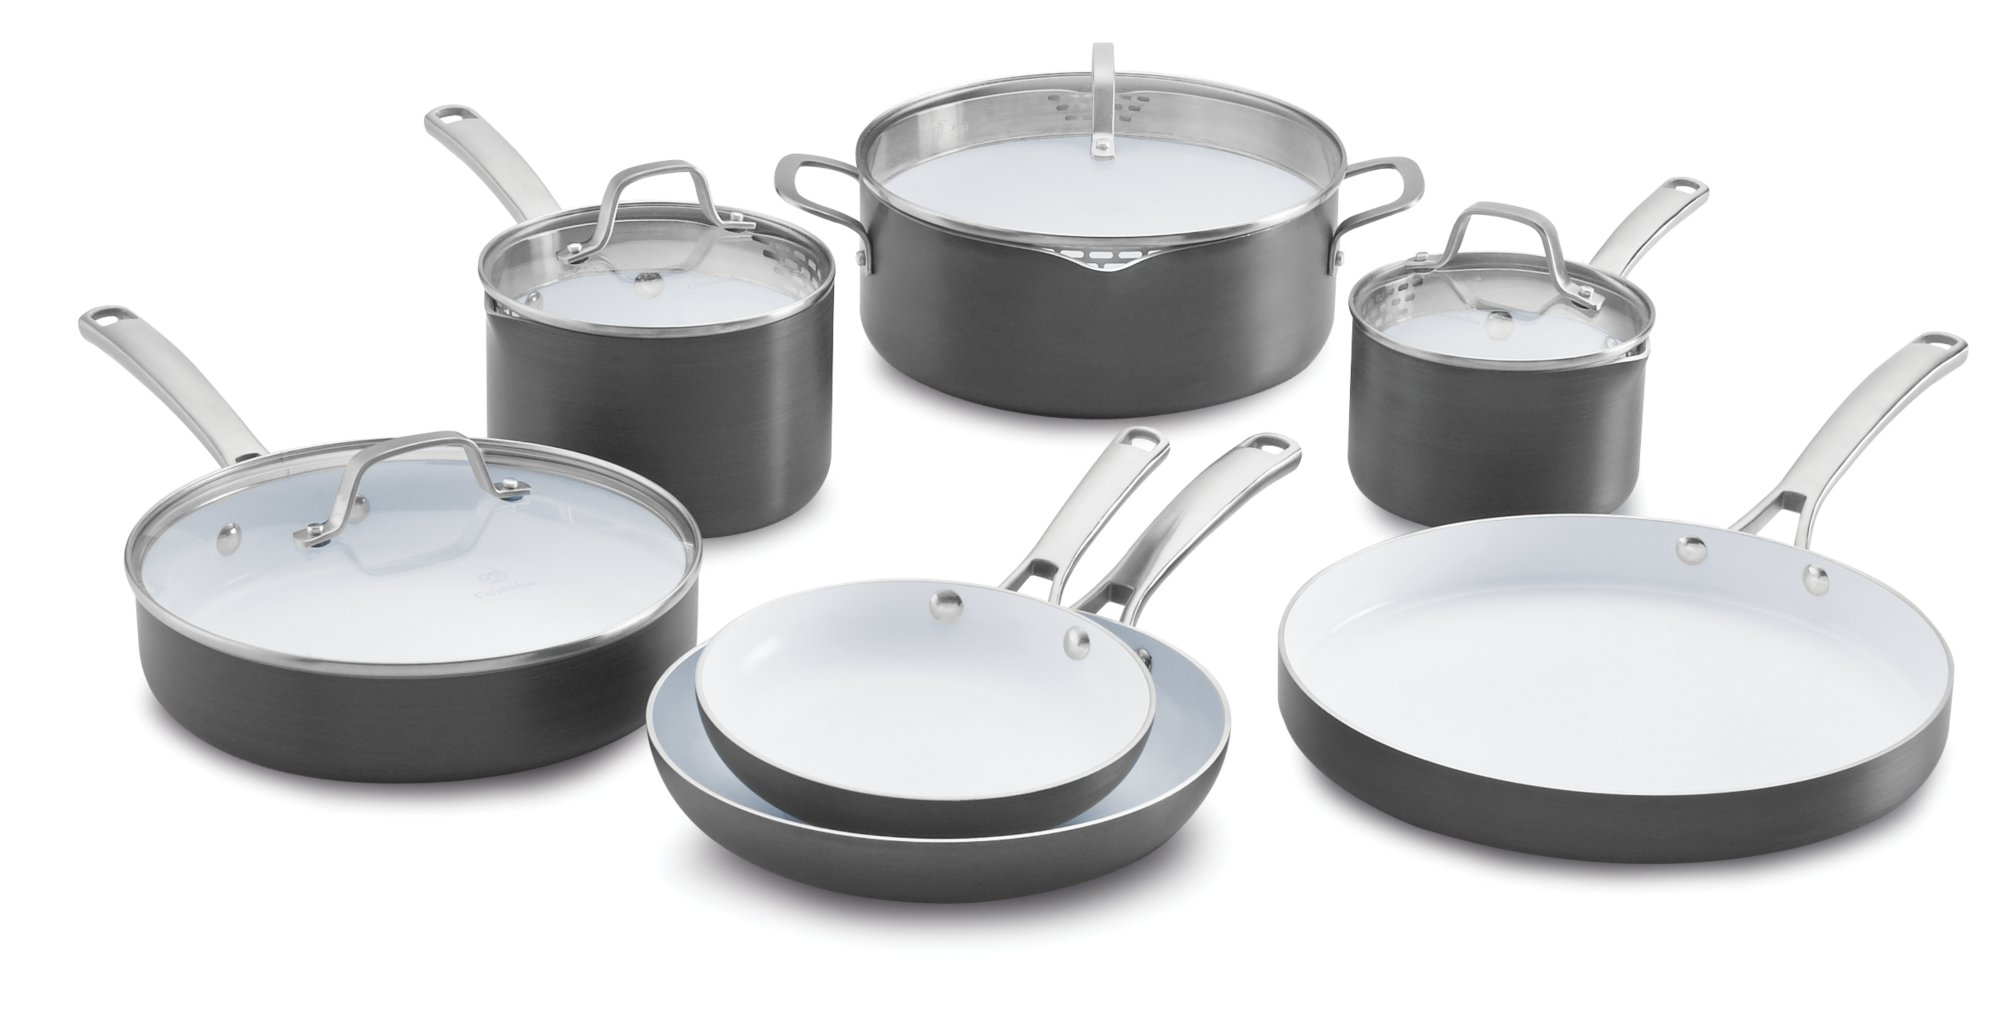 Calphalon Classic™ Ceramic Nonstick 11-pc. Cookware Set